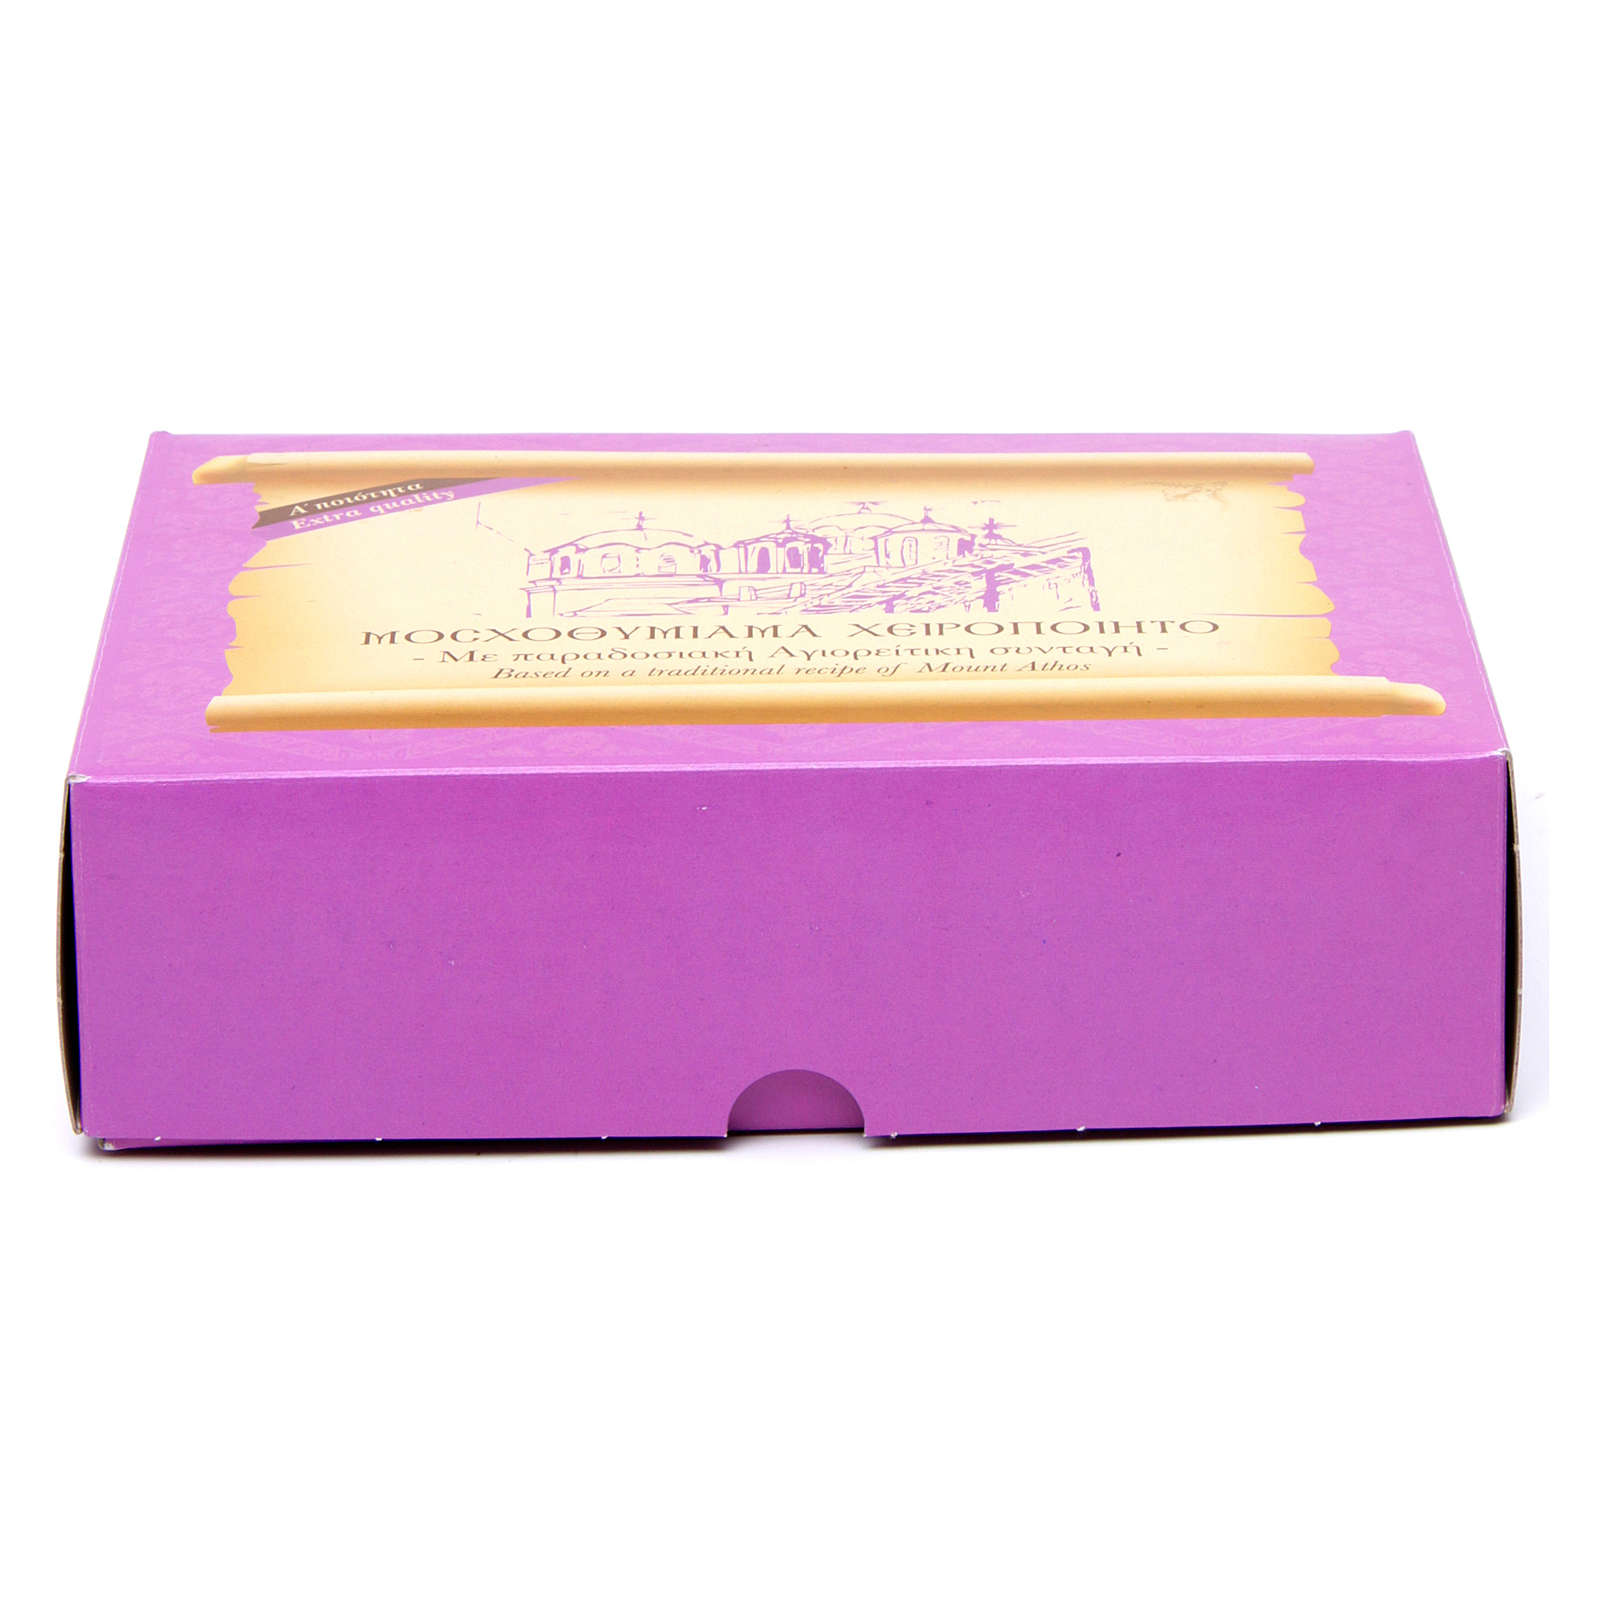 Geranium-scented Greek incense 1 kg 3